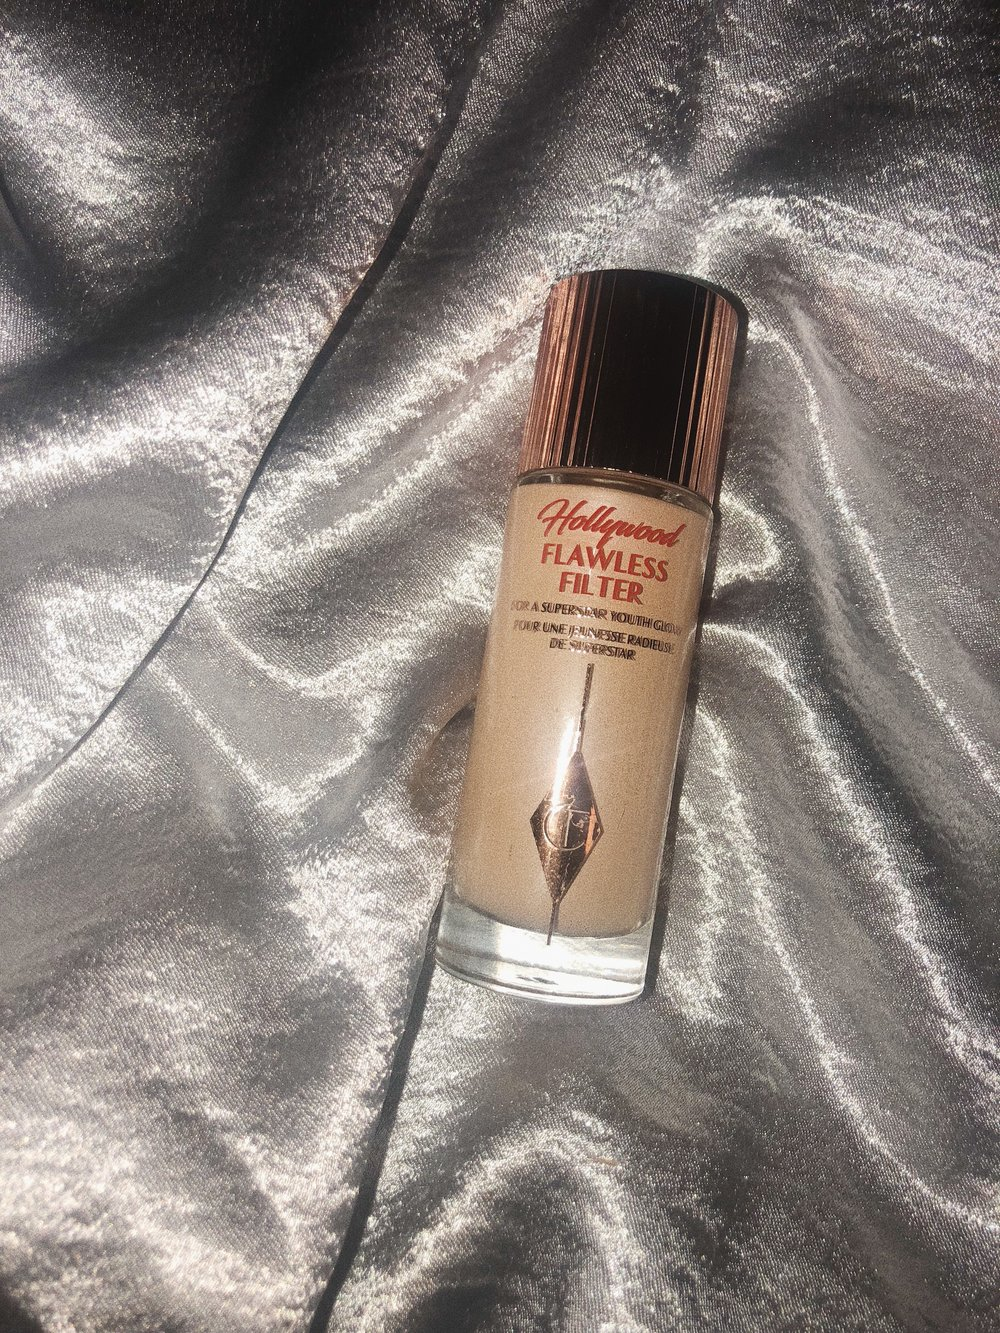 IF YOU WANT TO HAVE A DEWY COMPLEXION, THE   CHARLOTTE TILBURY FLAWLESS    FILTER  IS THE PRODUCT YOU WANNA USE. I USE IT JUST BY ITSELF OR BEFORE I APPLY A THIN LAYER OF MAKE UP. IT MAKES THE SKIN LOOK SO SO BEAUTIFUL, IT'S A DREAM. I WEAR SHADE 3.. - J